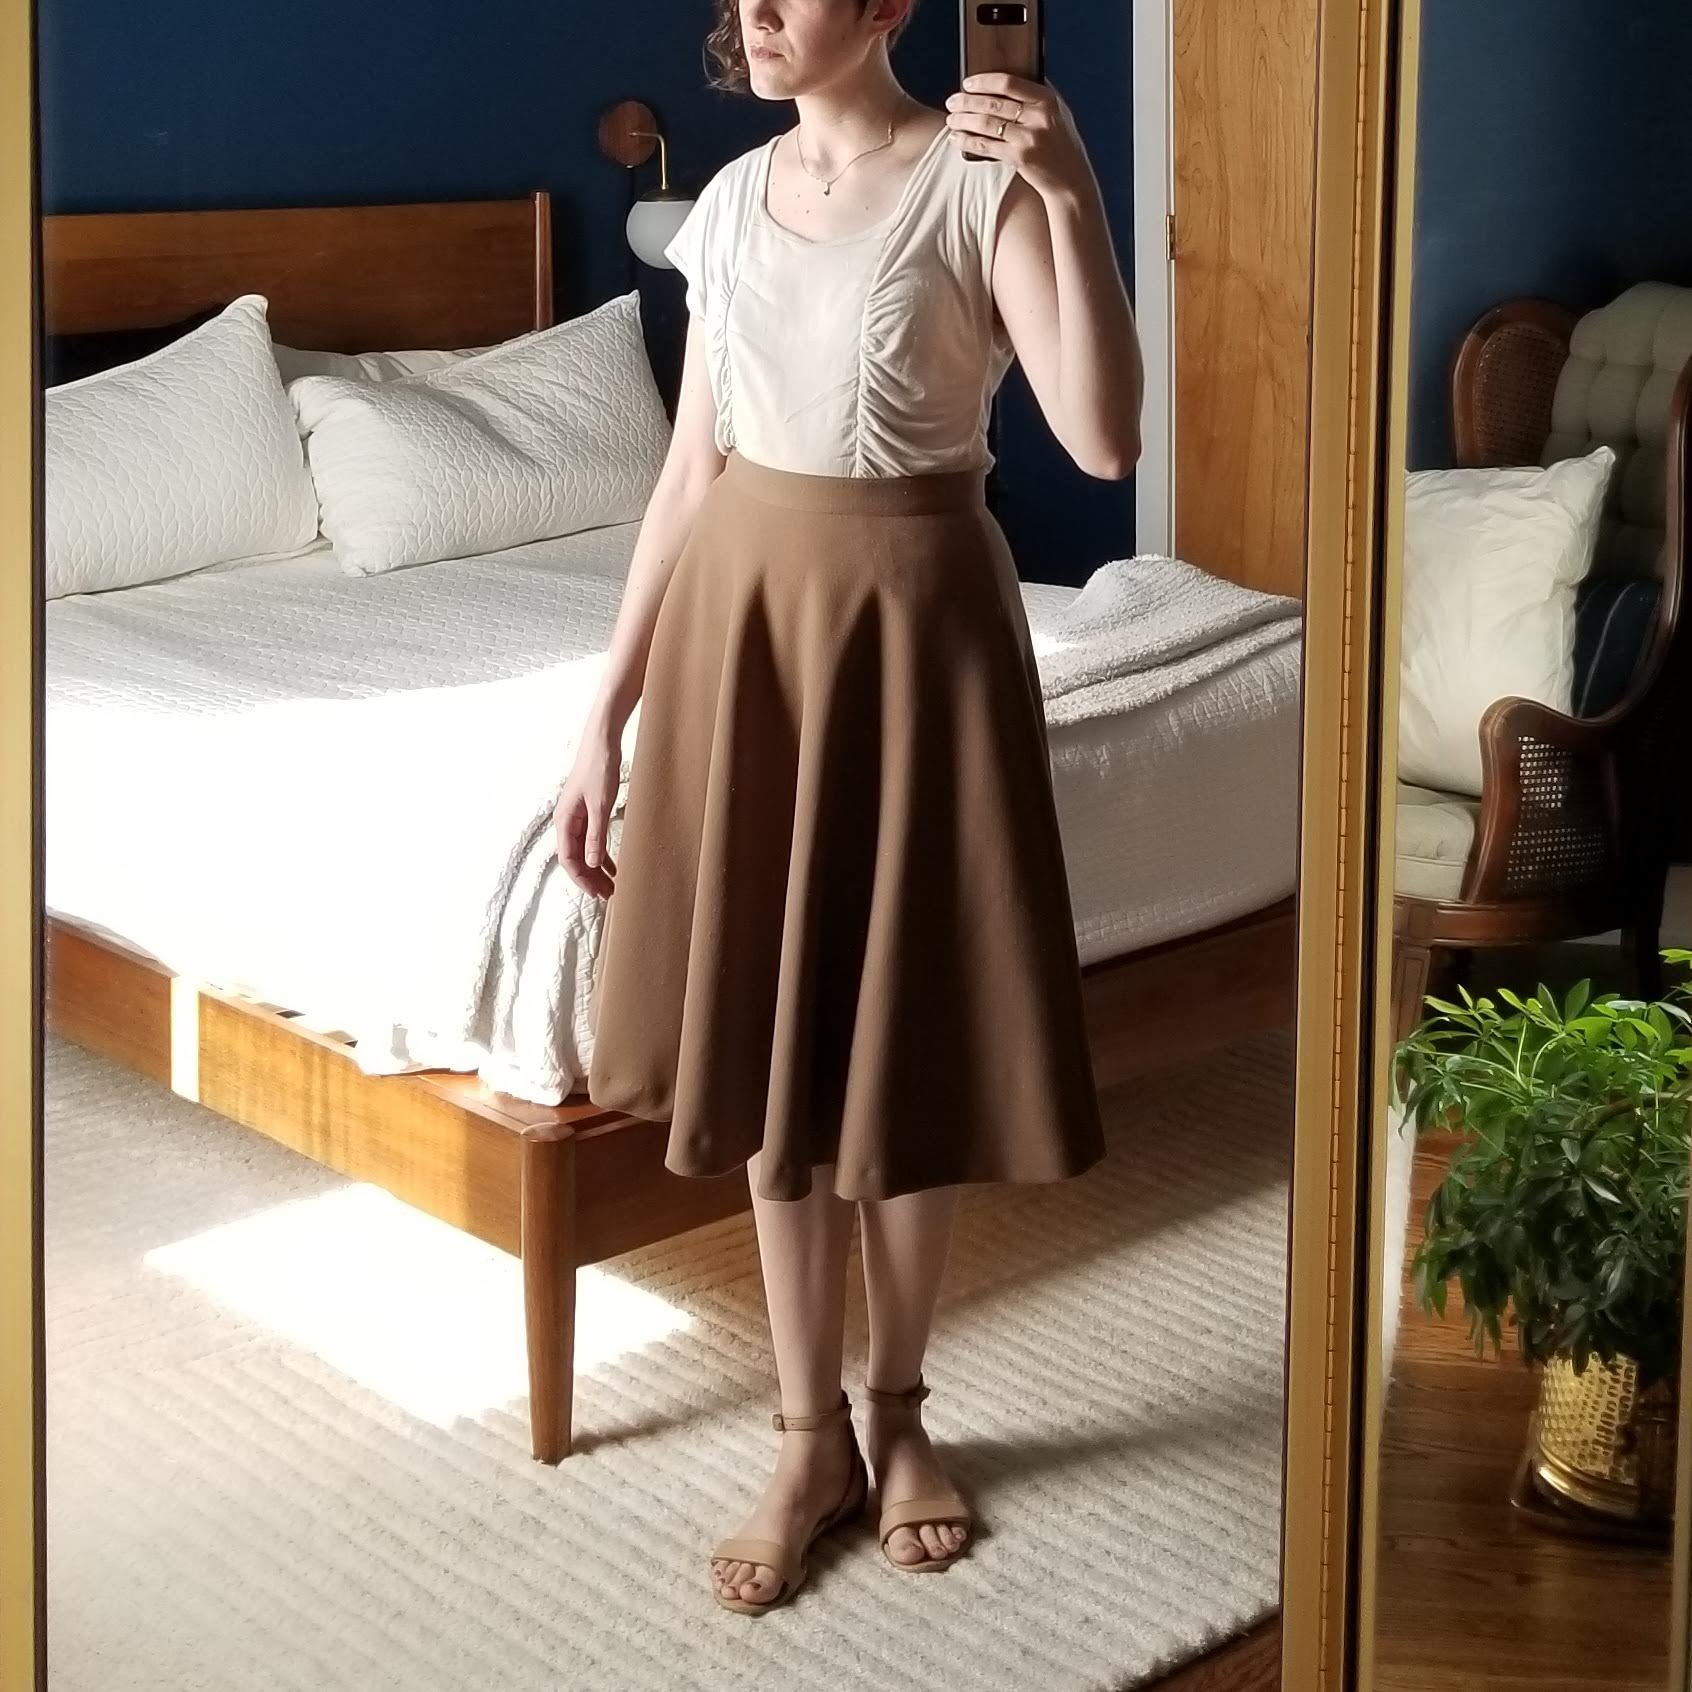 Monday - June 4, 2018This is on the dressier side of what I've worn lately. But in a break from habit, I wore my beige sandals instead of the black ones. I enjoyed the soft neutral palette and calming effect but found the skirt really hot! It has an acetate lining, which normally linings are great and a mark of quality, but maybe not so great when its 90 degrees out. Think I'll retire this skirt for the summer.